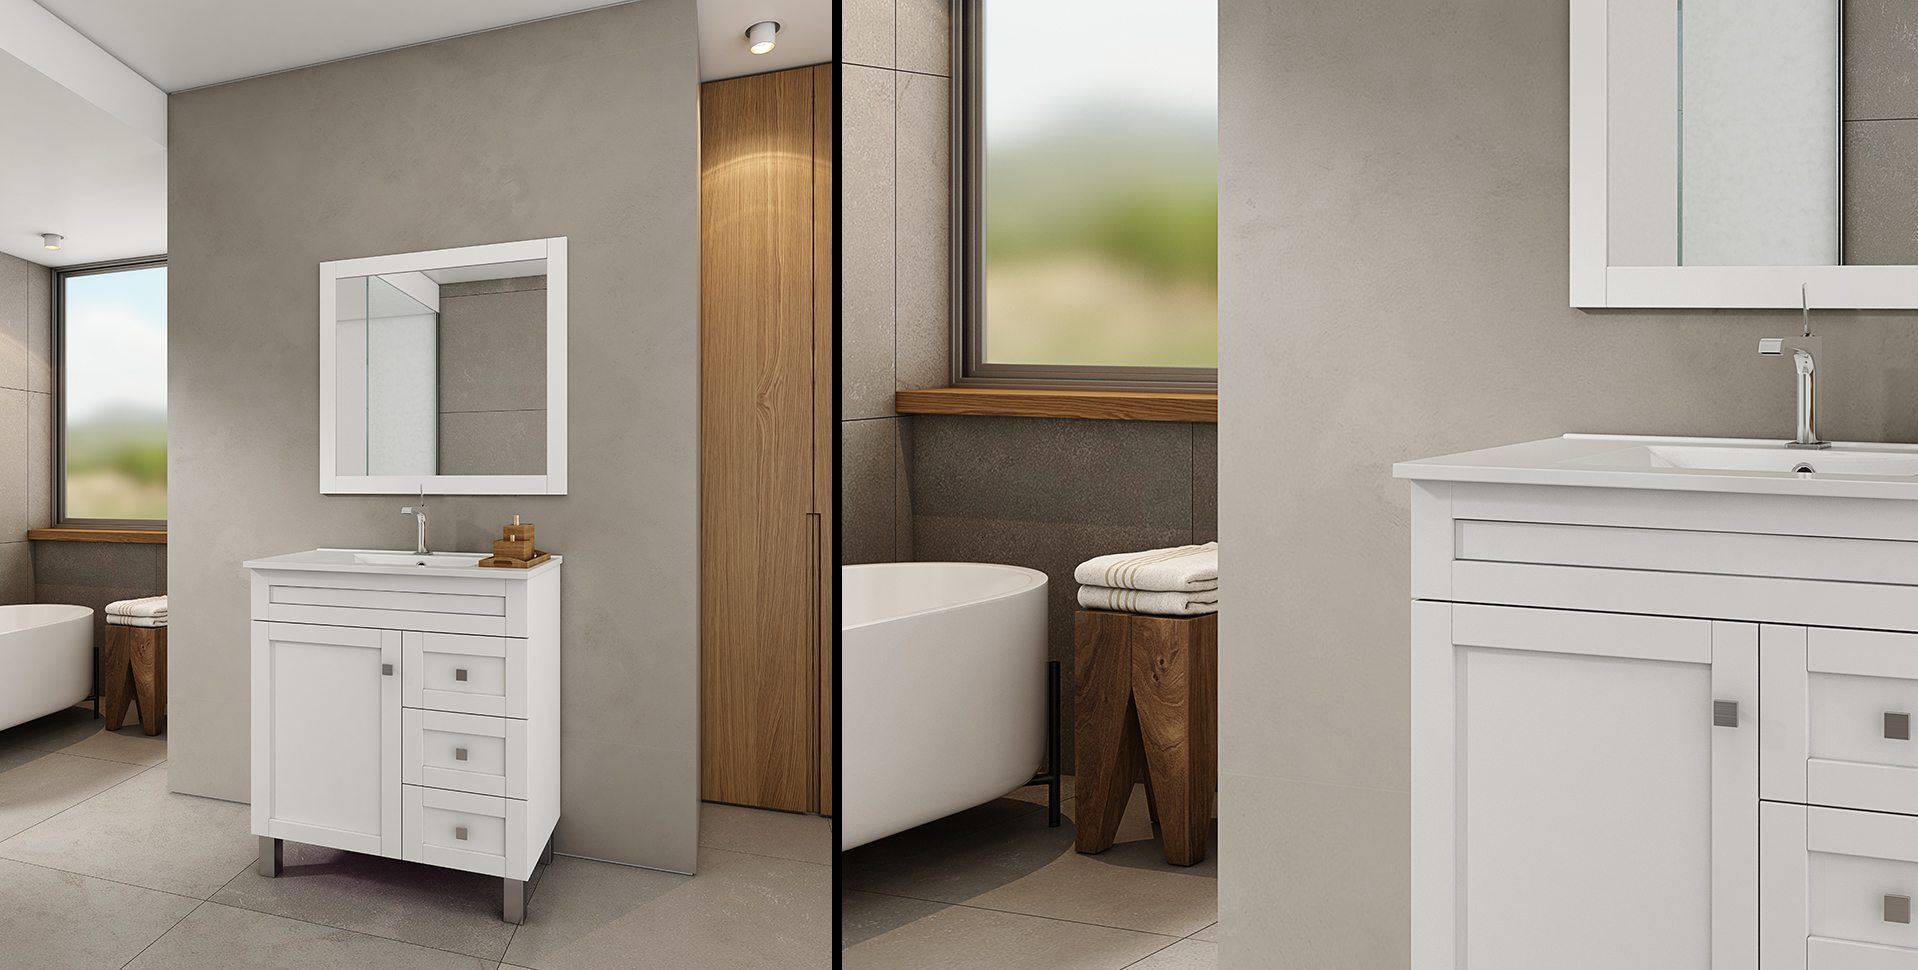 Maayan-Golan_Architectural-Visualization_product-visualization_bathroom-cabinets_el-gal_07